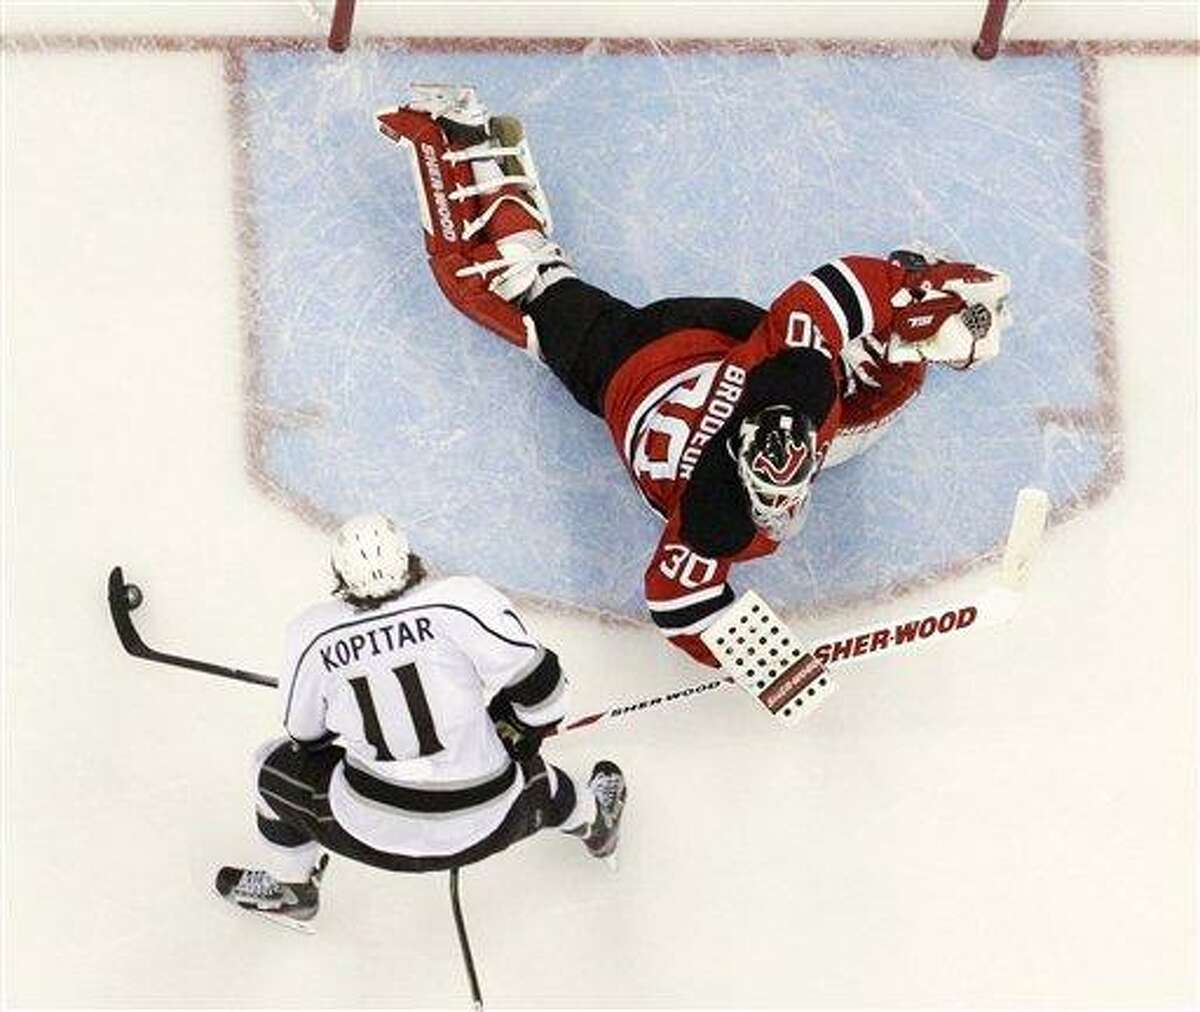 Los Angeles Kings' Anze Kopitar, of Slovenia, prepares to shoot the puck past New Jersey Devils' Martin Brodeur for a goal during overtime in Game 1 of the NHL hockey Stanley Cup finals Wednesday, May 30, 2012, in Newark, N.J. The Kings won 2-1. (AP Photo/Julio Cortez)